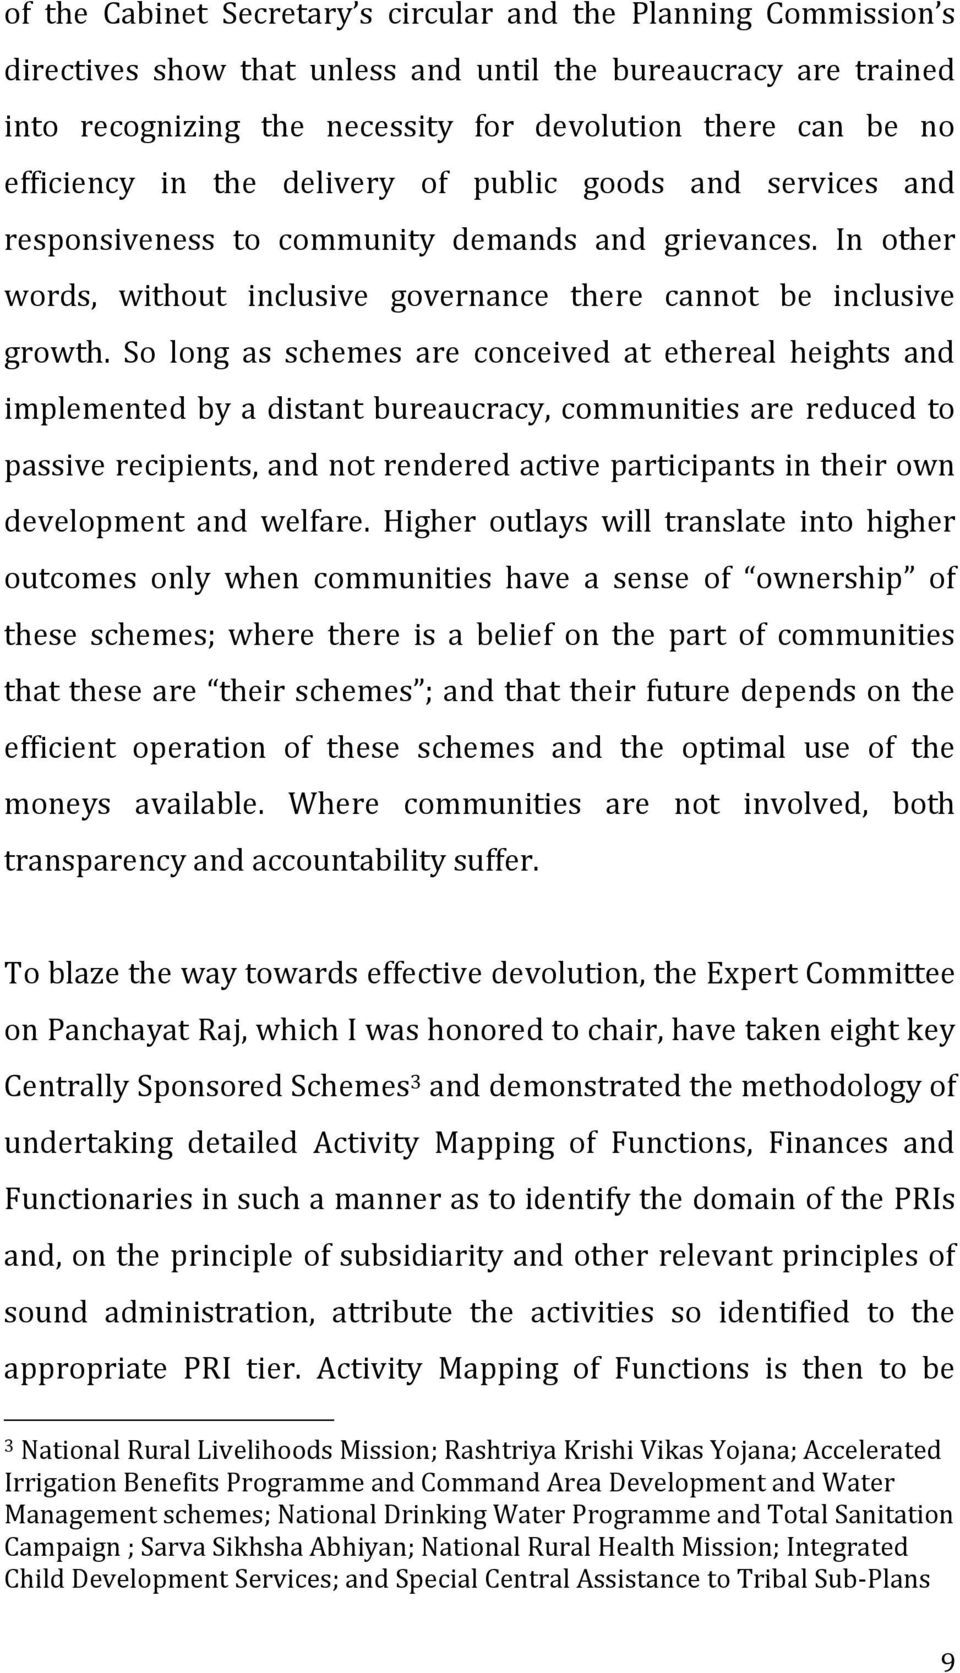 So long as schemes are conceived at ethereal heights and implemented by a distant bureaucracy, communities are reduced to passive recipients, and not rendered active participants in their own